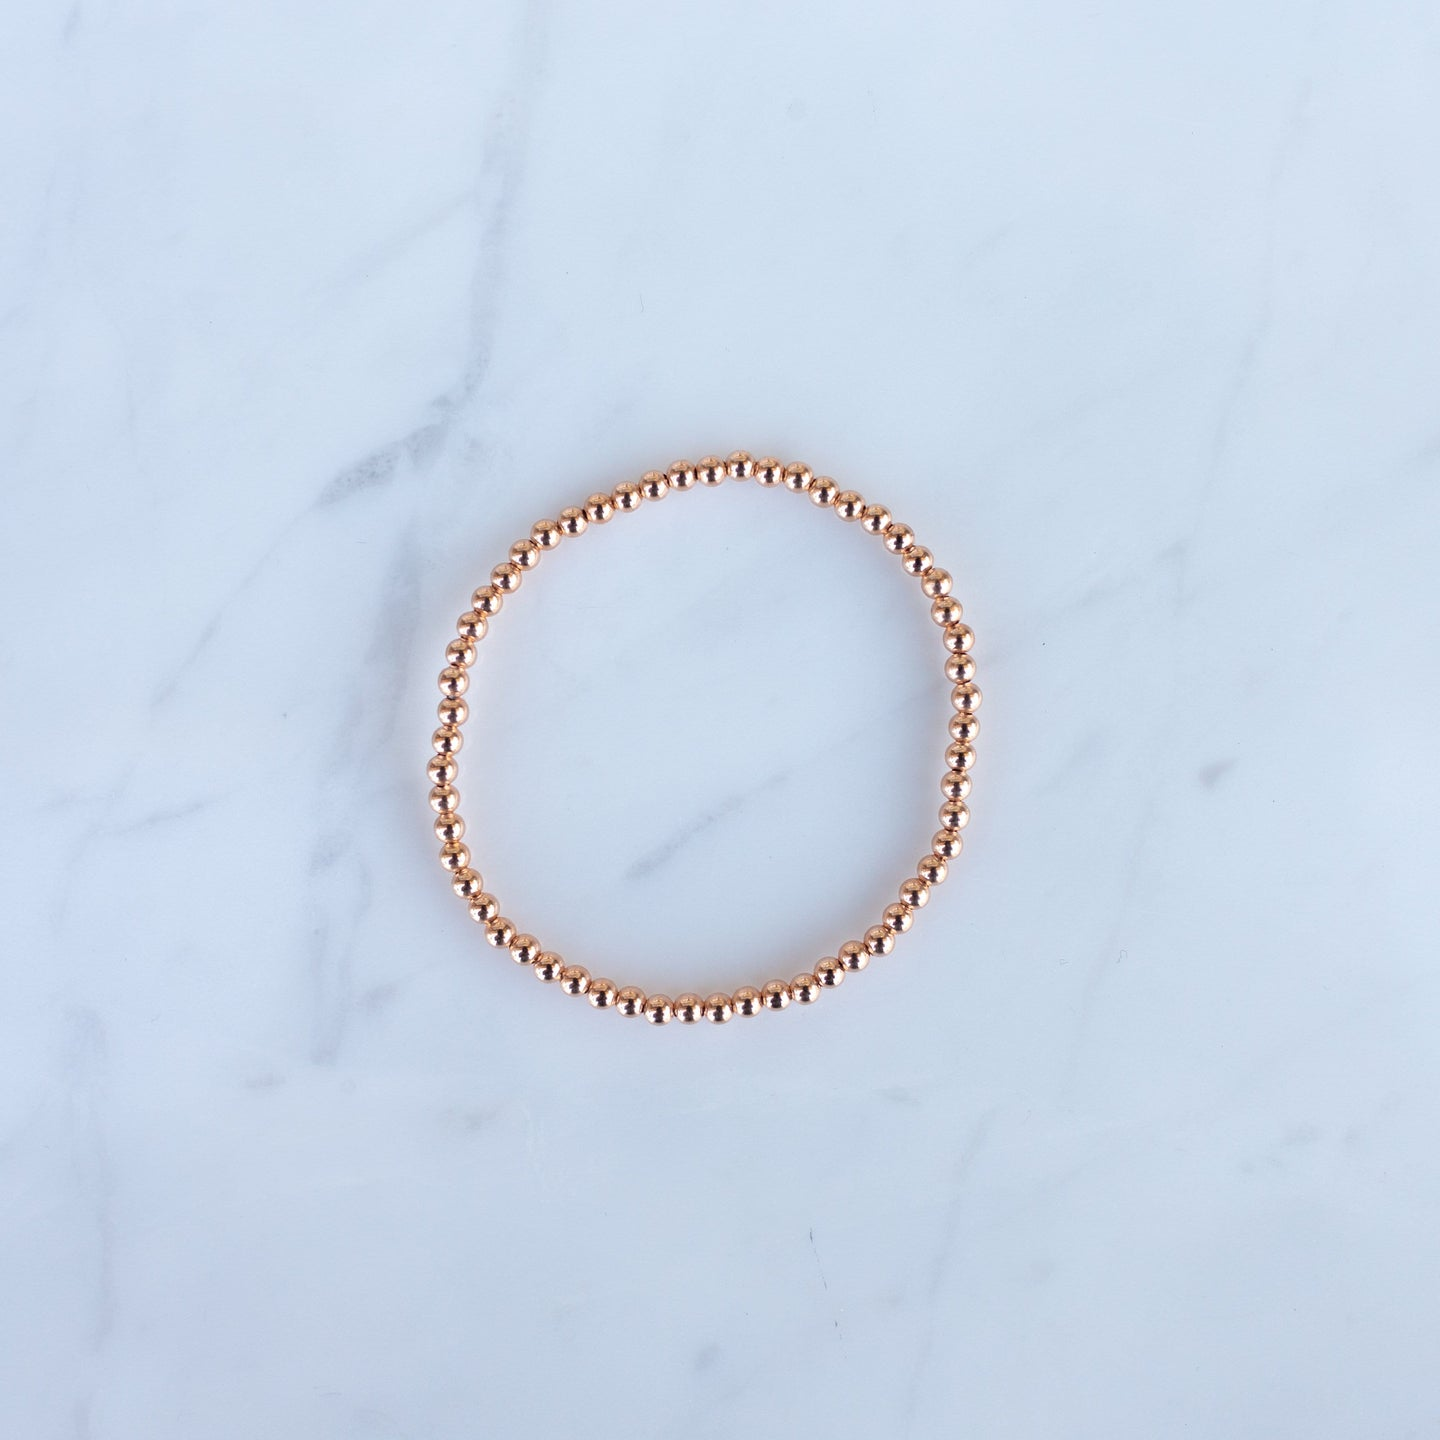 3mm Rose Gold Filled Beaded Bracelet